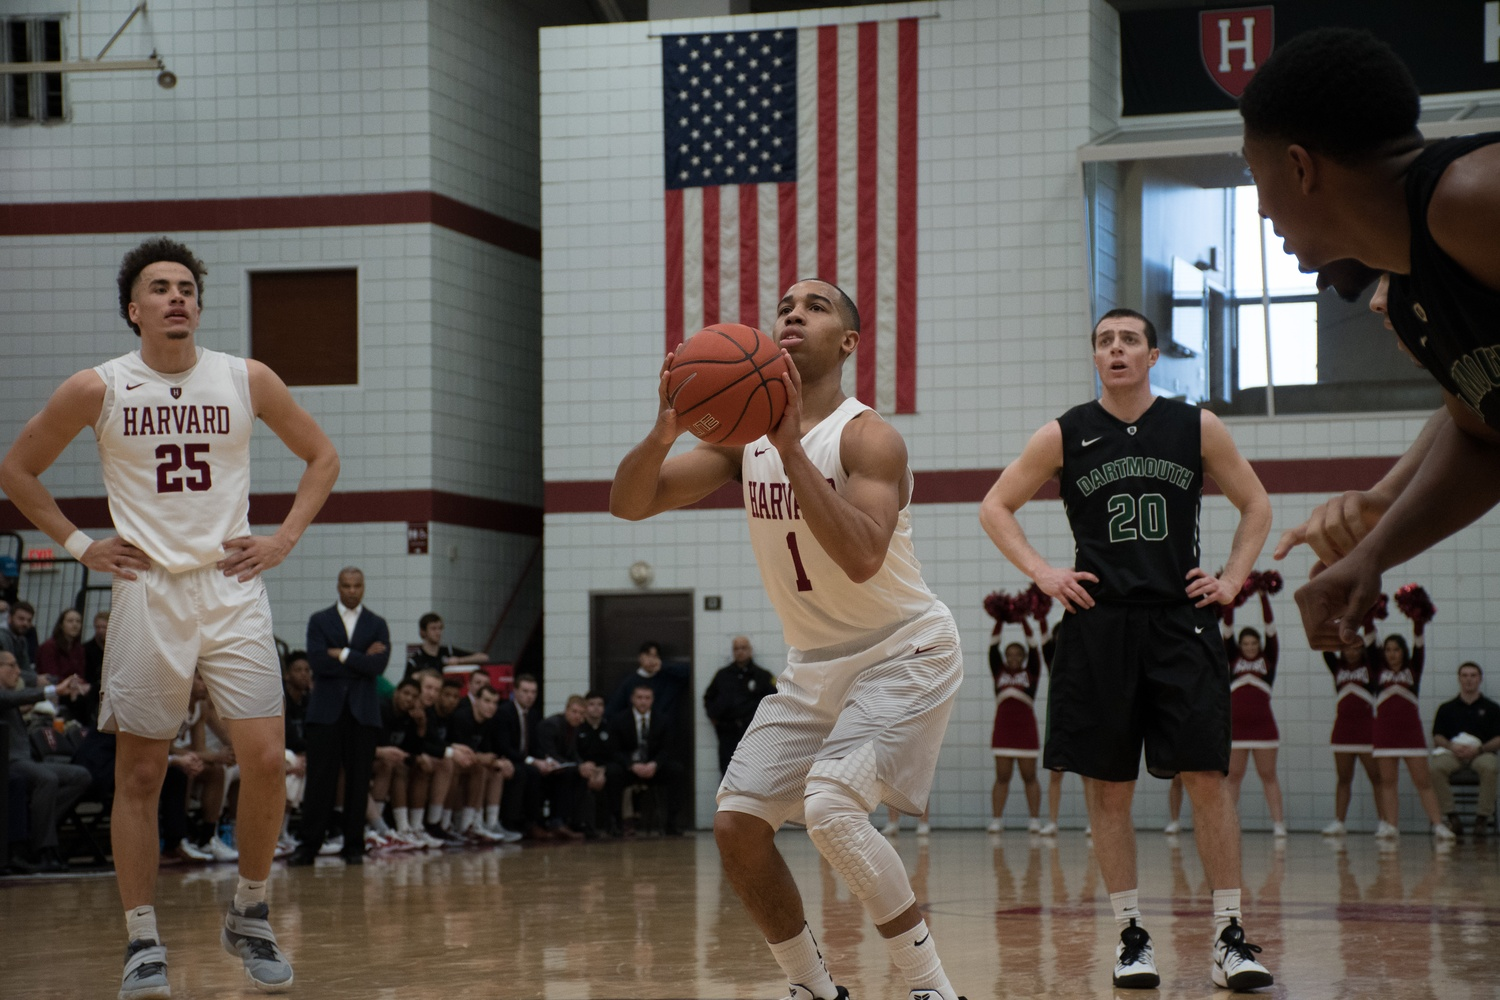 Co-Captain Siyani Chambers prepares for a free throw against Dartmouth on Saturday. Harvard's strong defense led to an 82-68 victory against the Big Green.